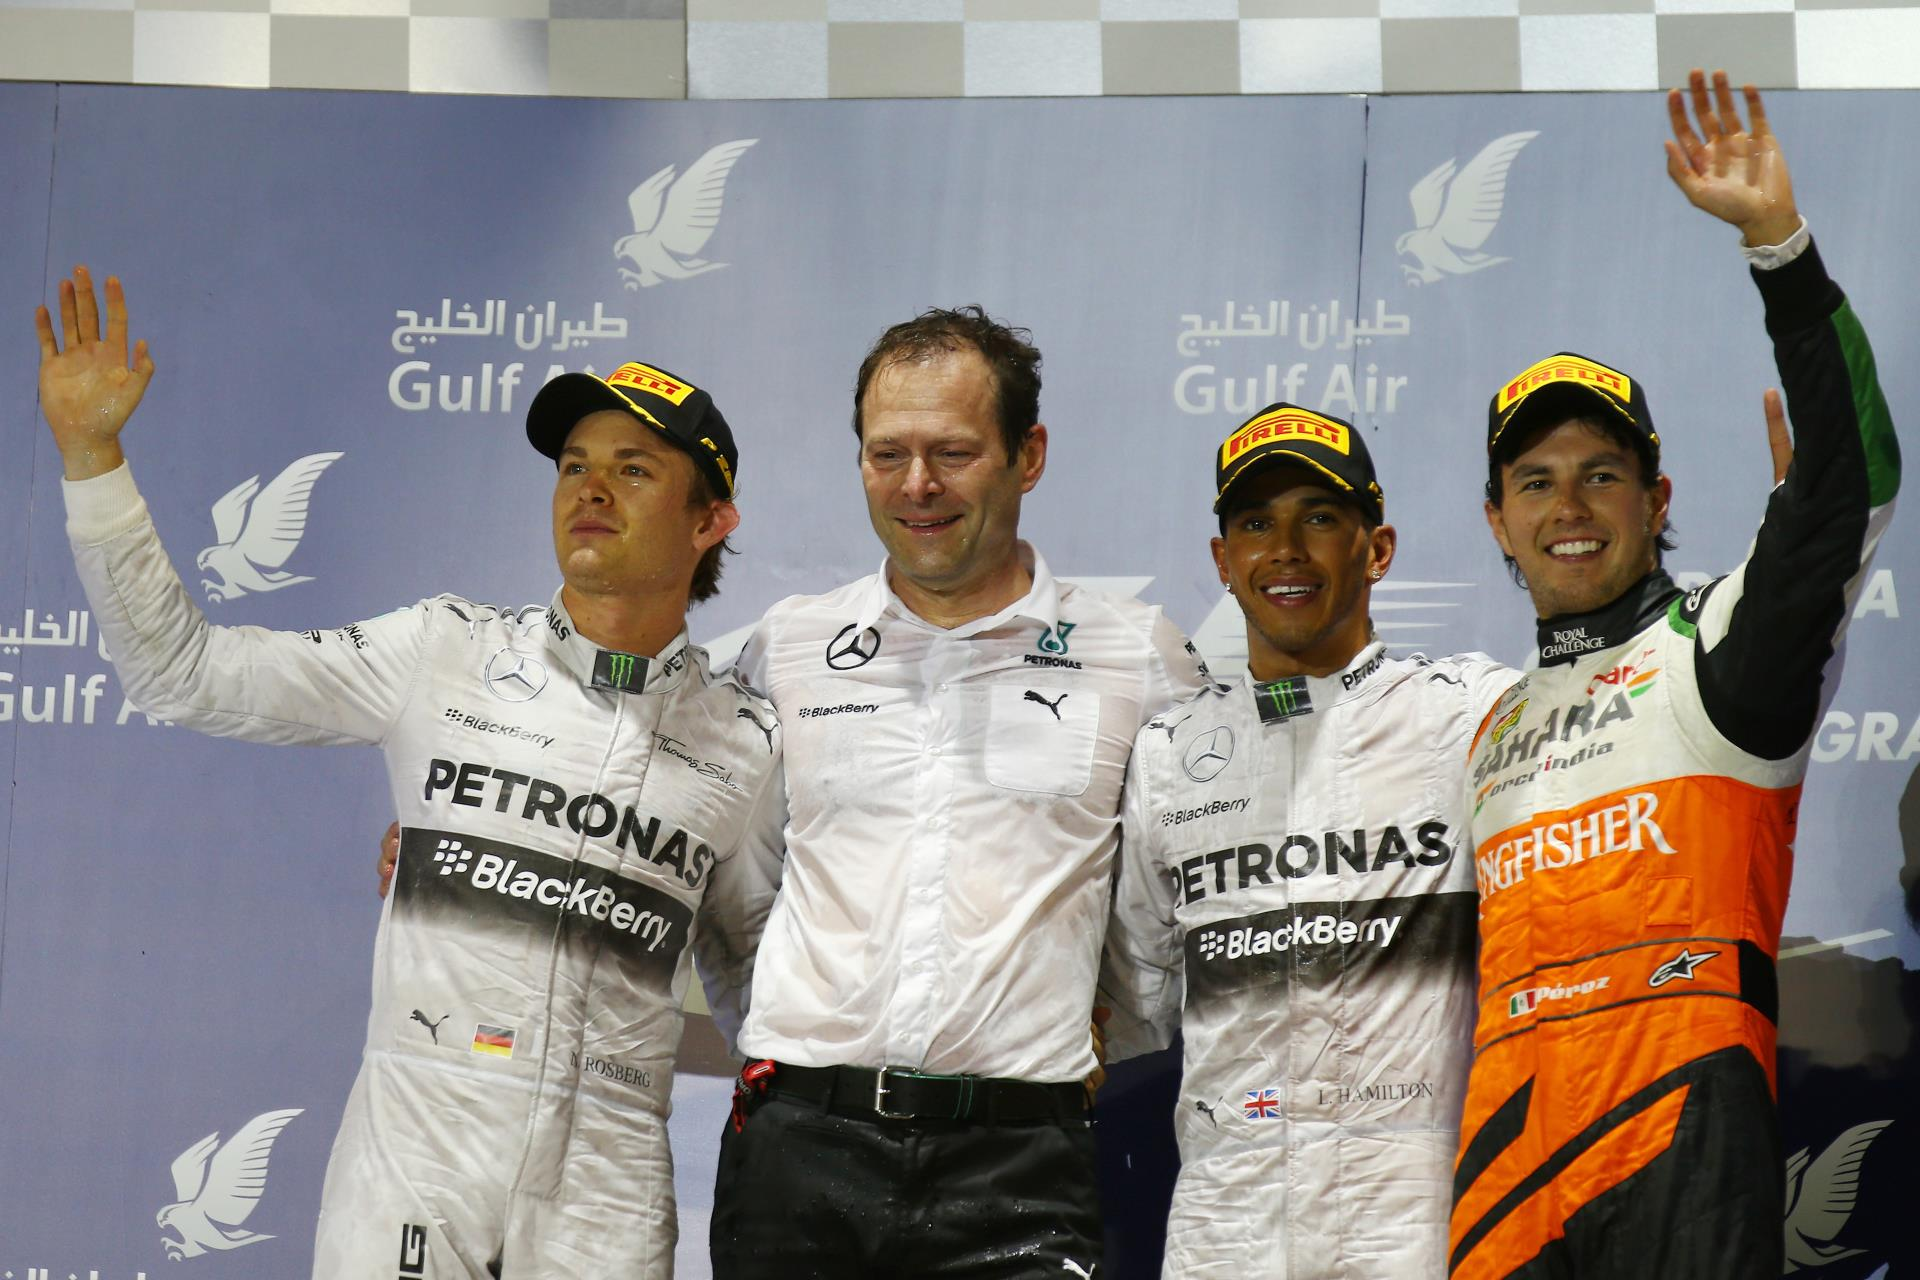 Bahrain F1 2014 podium Hamilton Rosberg Perez Foto Force India